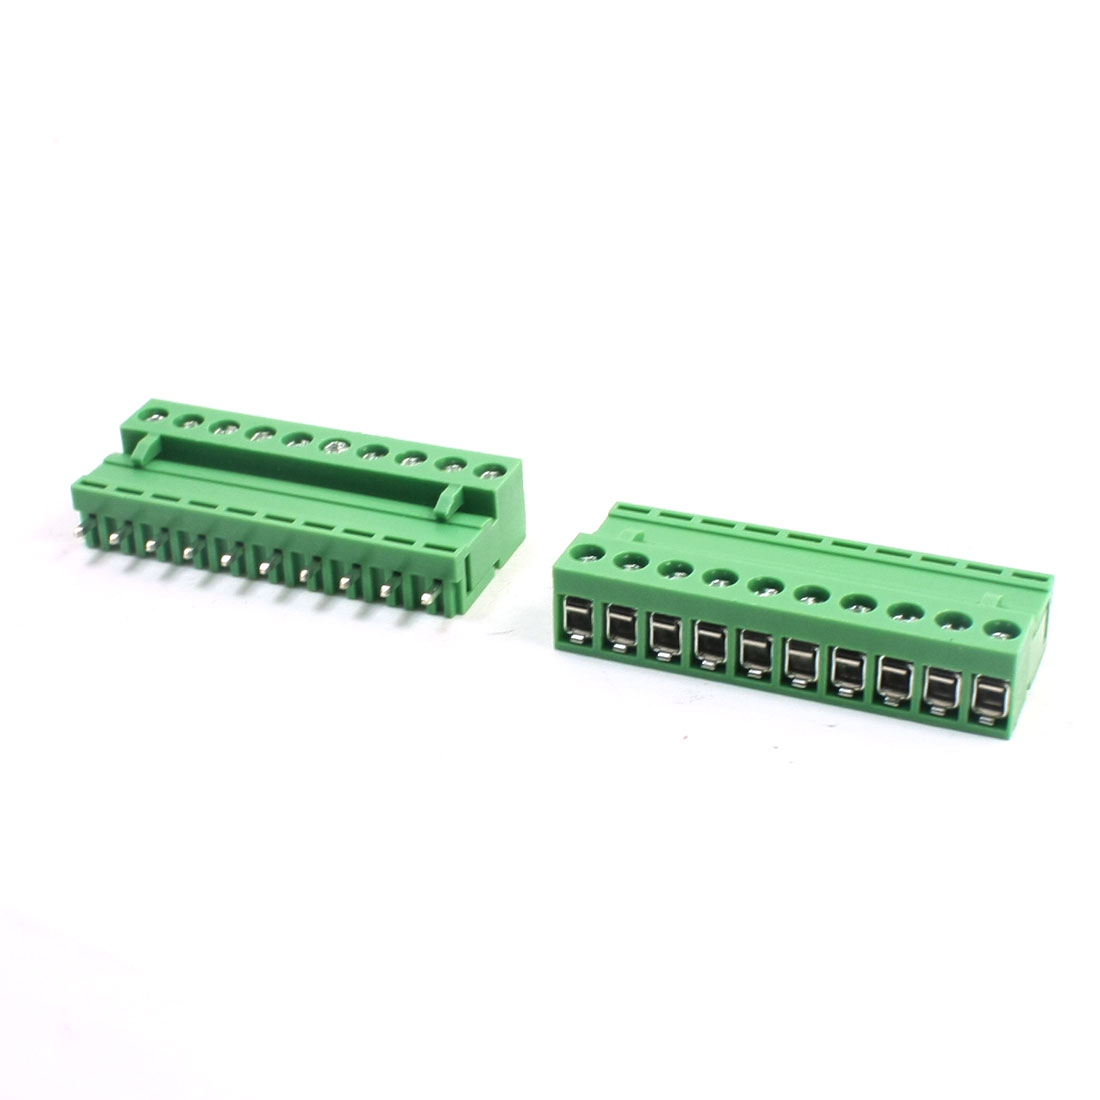 2Pcs AC300V 10A 5.08mm Pitch 10Pin Through Hole Pluggable Type PCB Screw Terminal Barrier Block Connector for 14-26AWG Wire